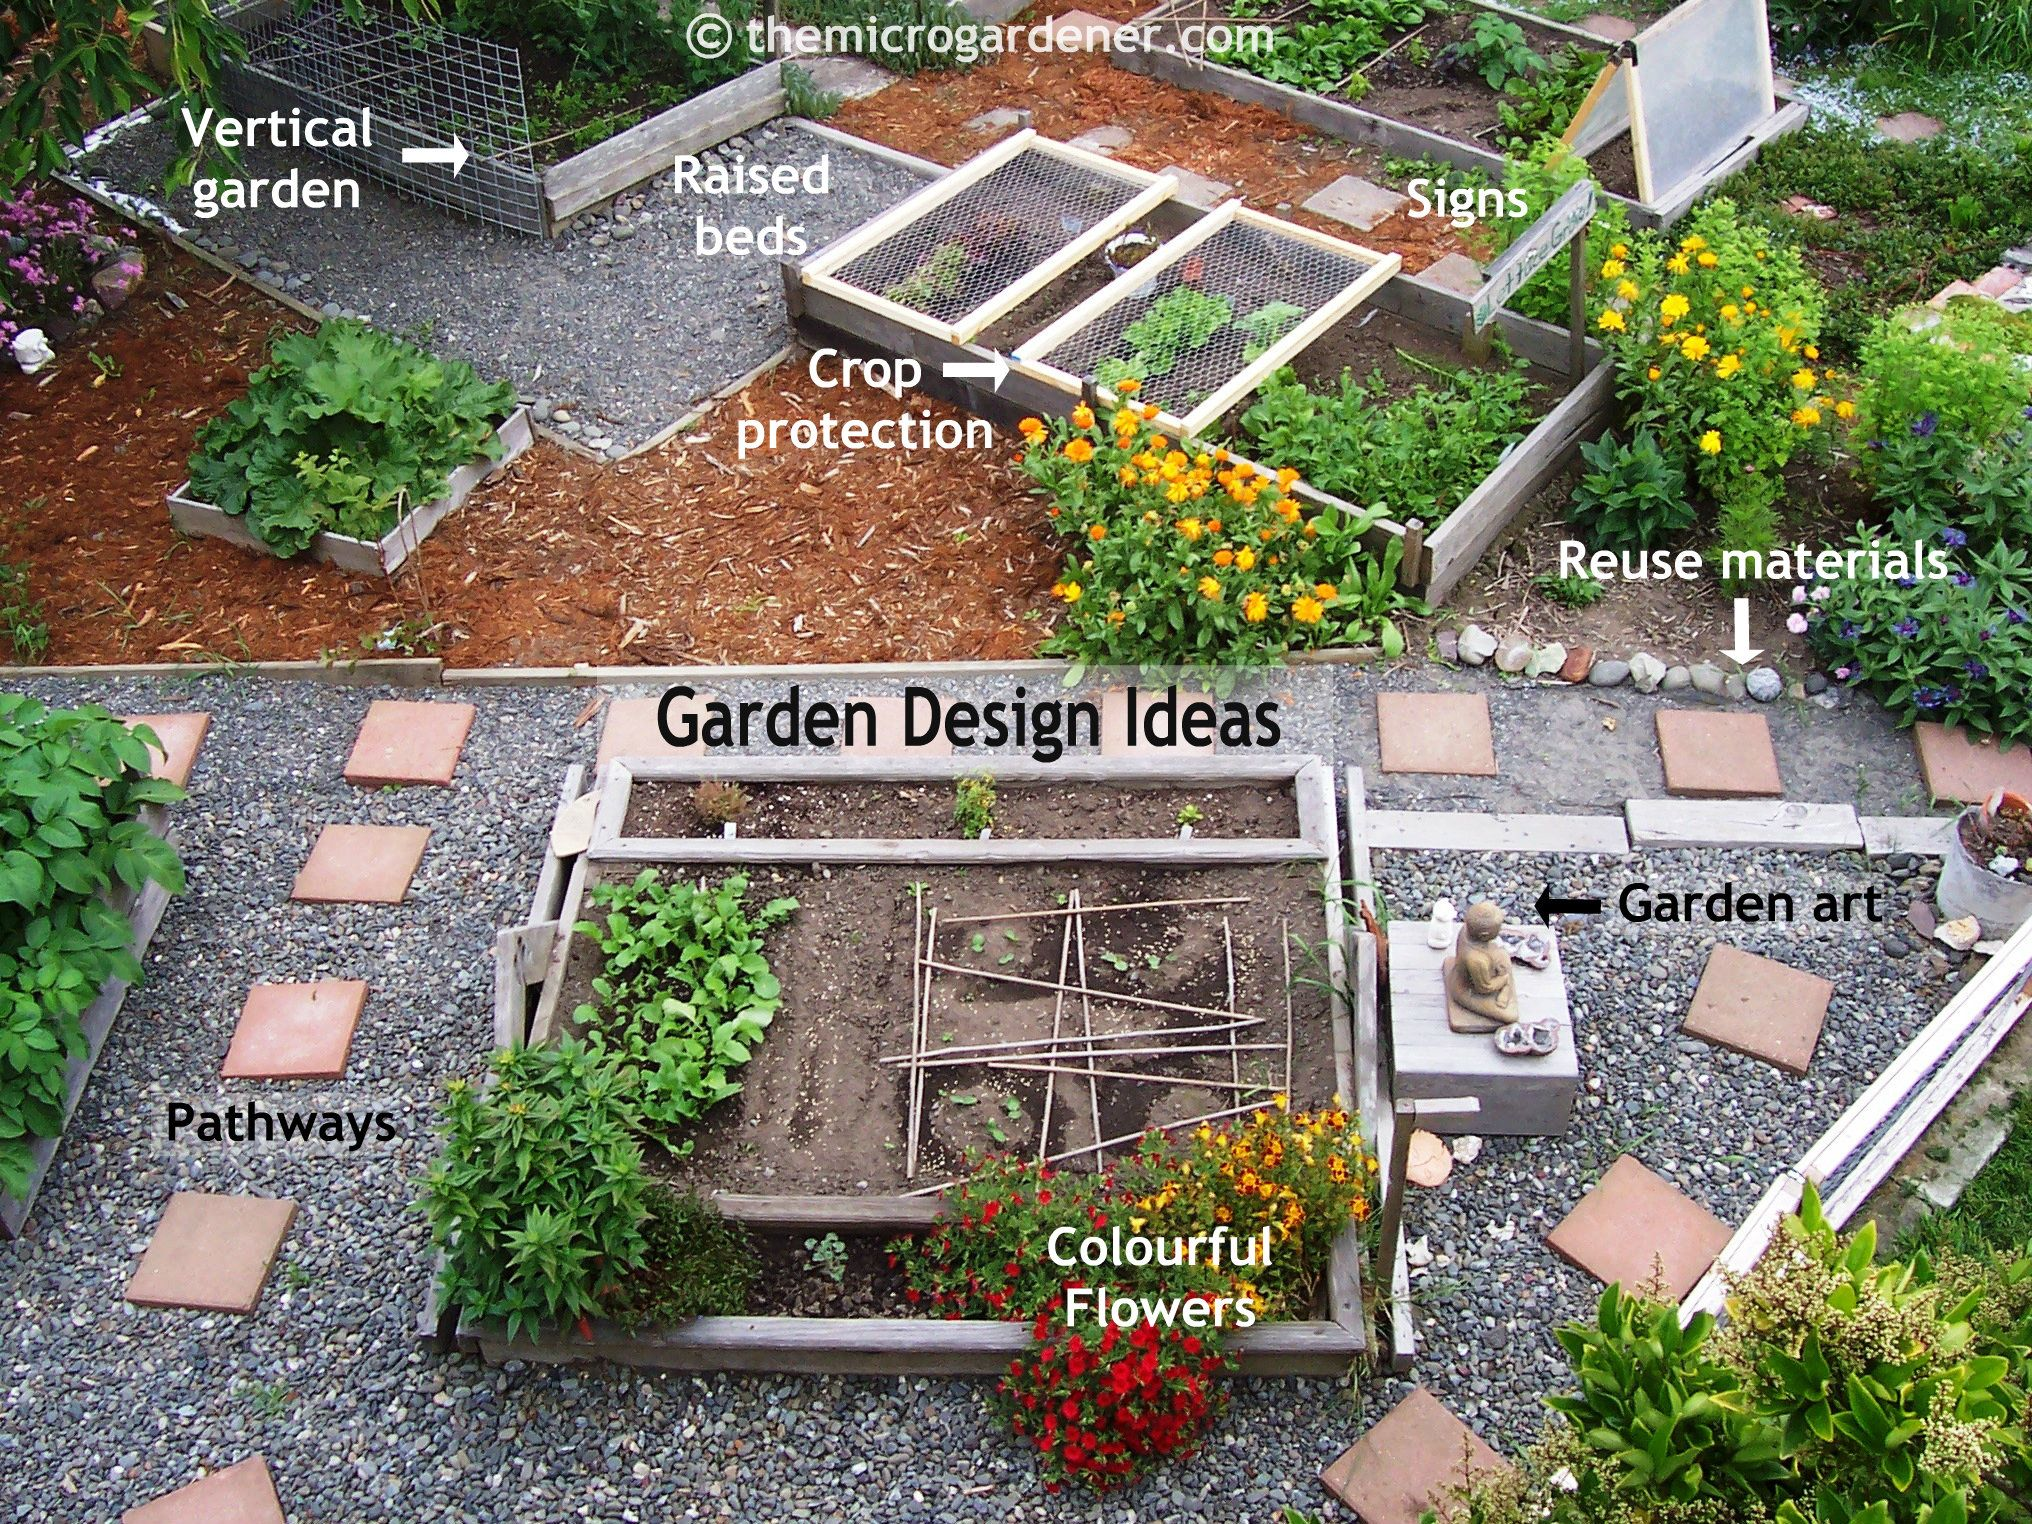 Small garden design ideas on pinterest vertical gardens for Compact garden designs